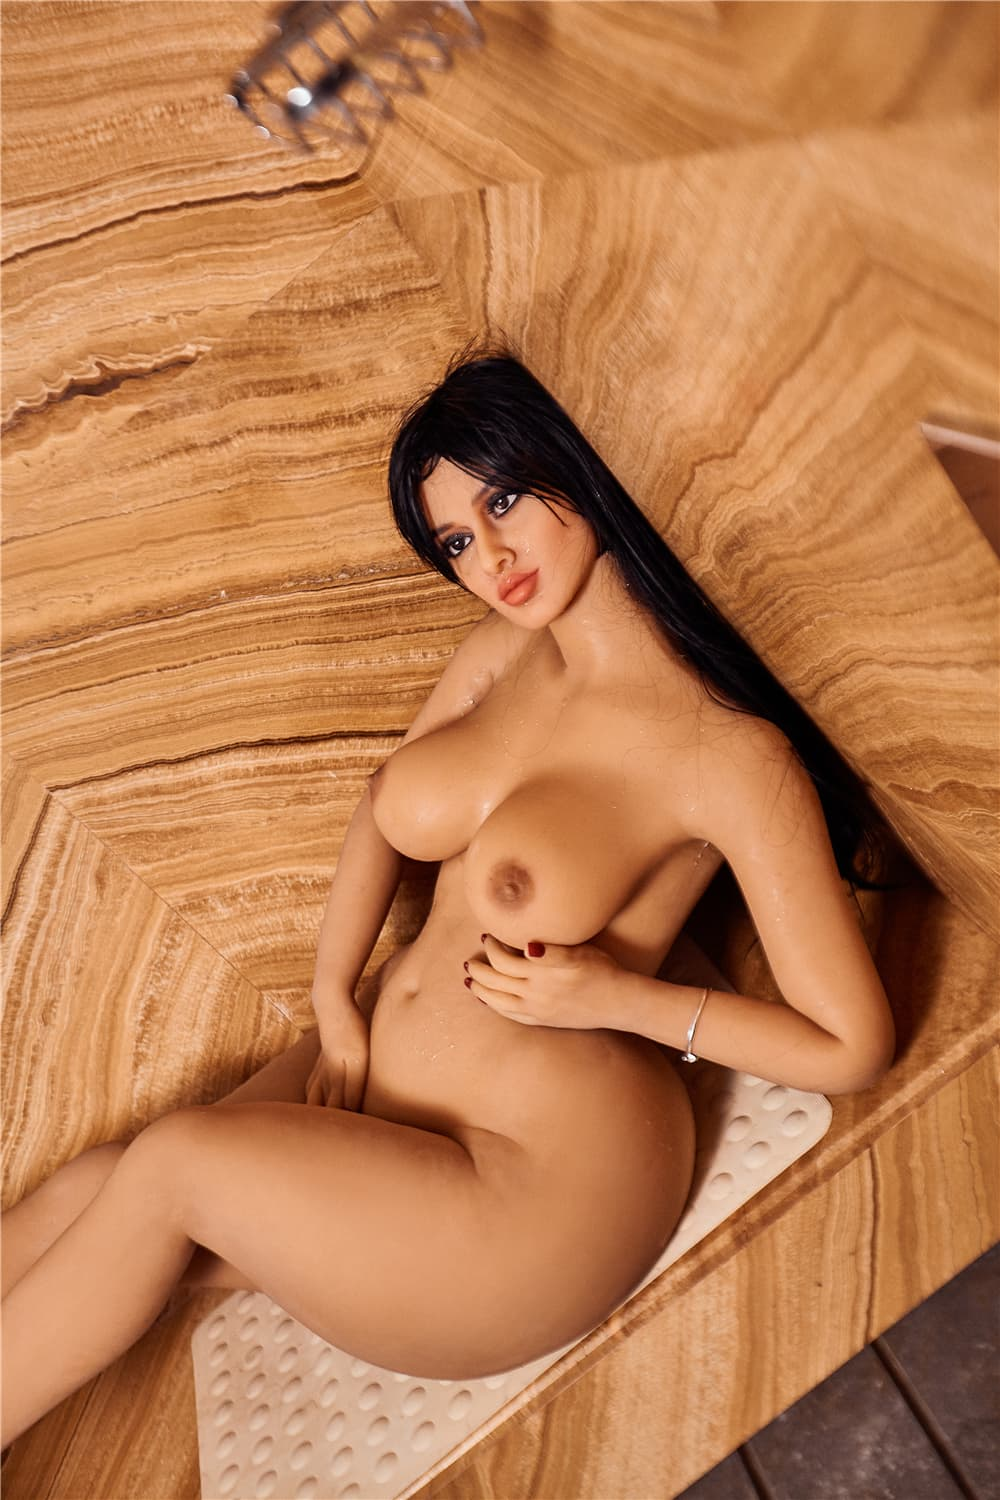 fairuza 156cm black hair curvy medium tits tan skin tpe sex doll